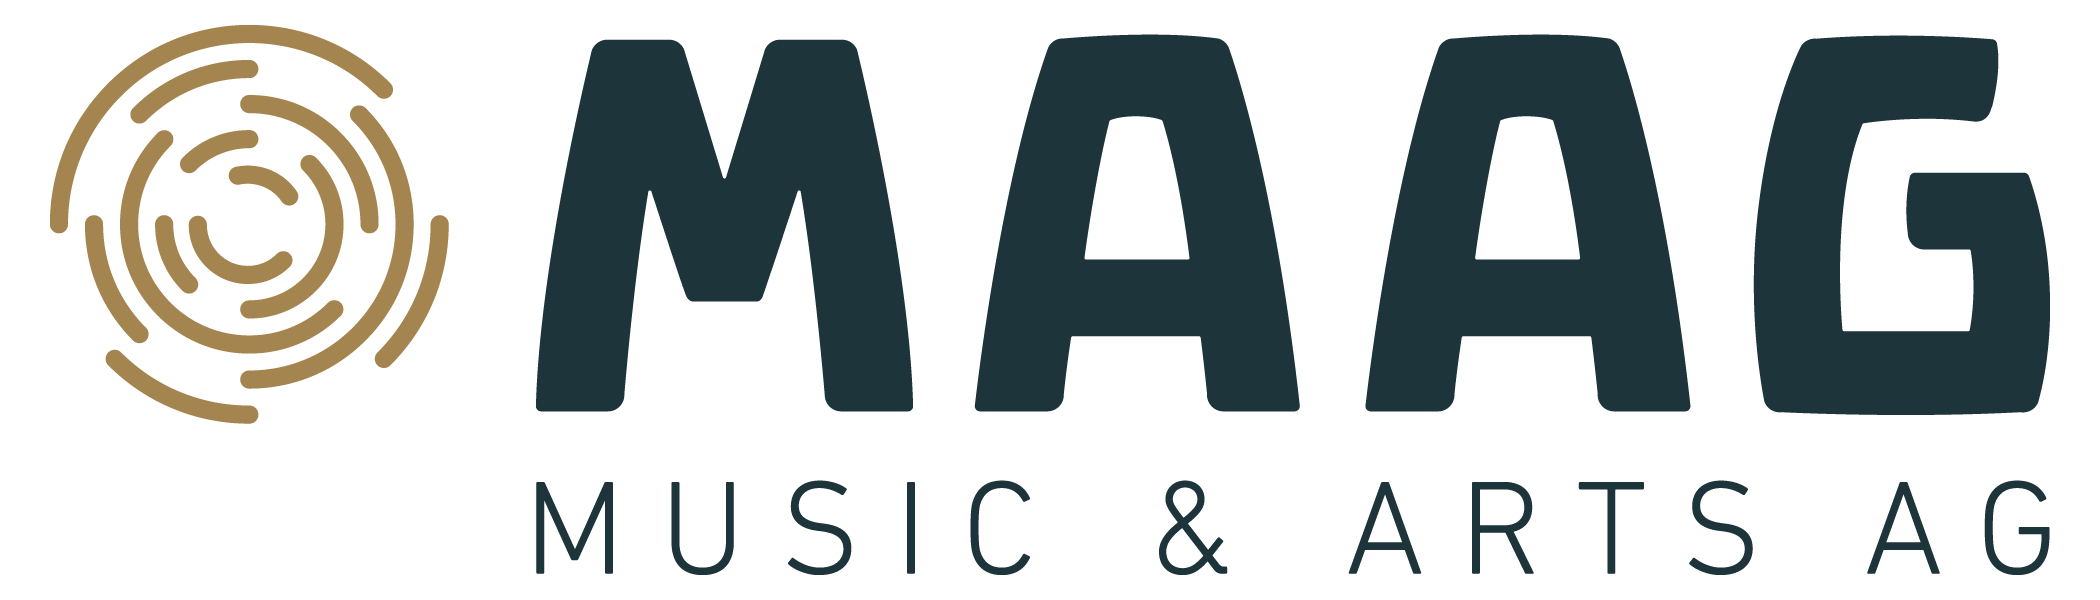 Maag Music & Arts AG_2019_2020